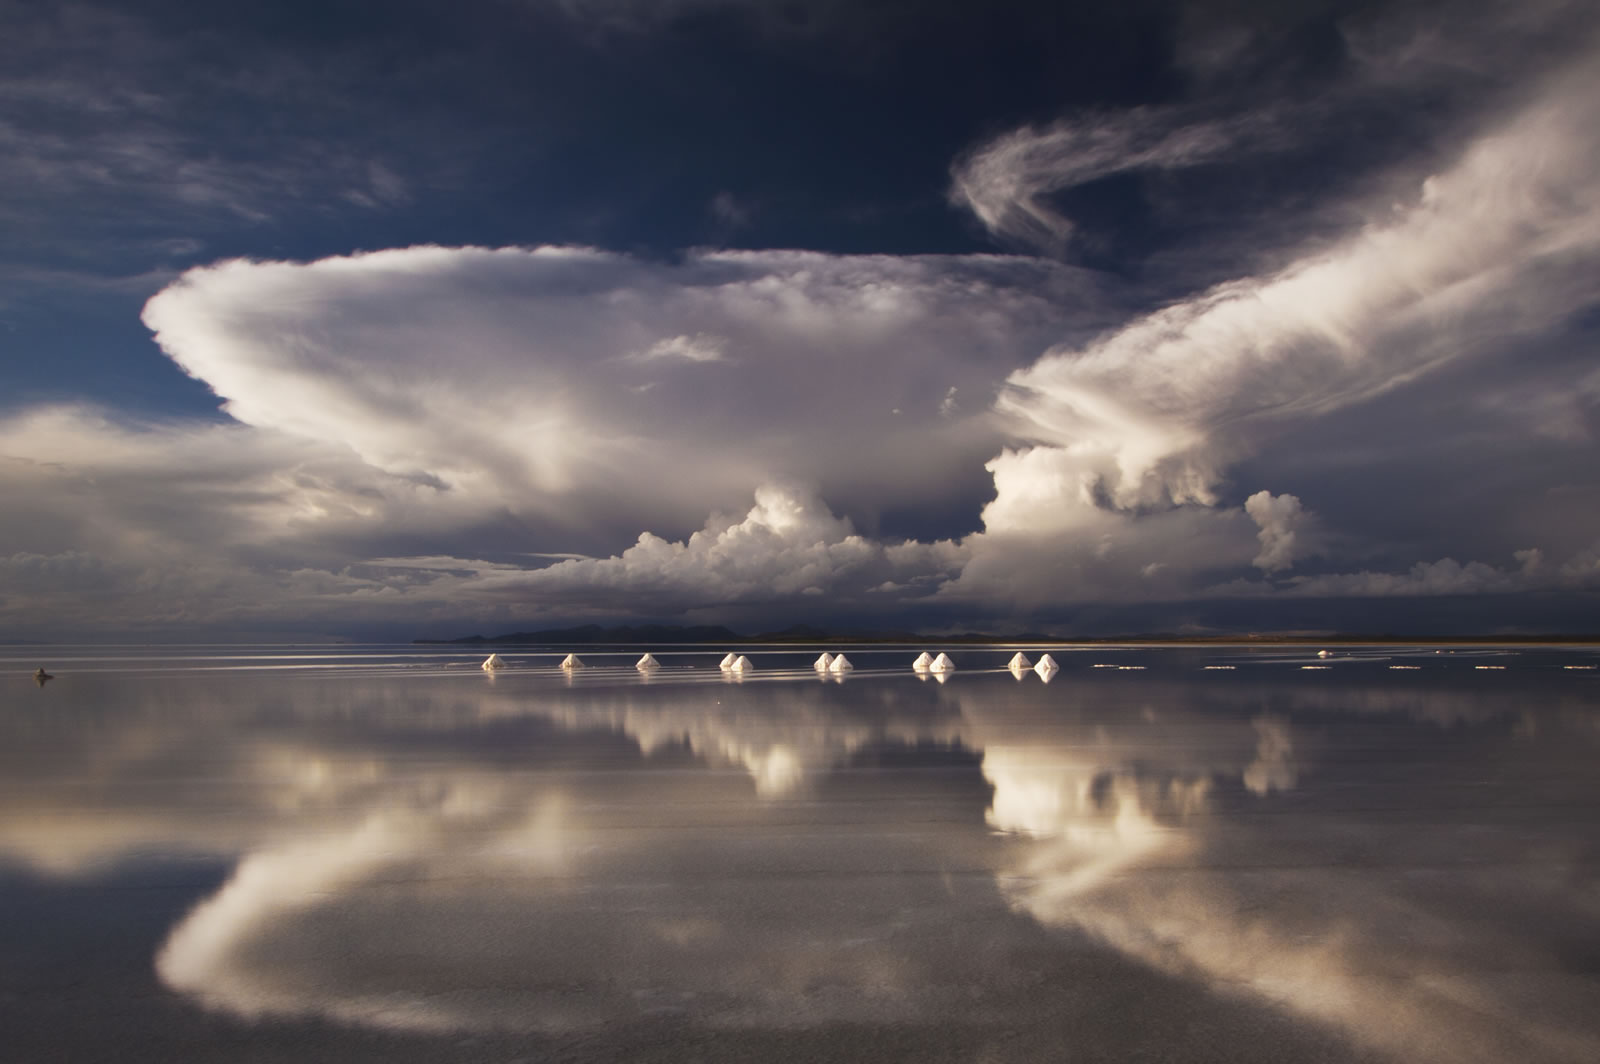 Perspective photos in the Uyuni Salt Flats: how to take them